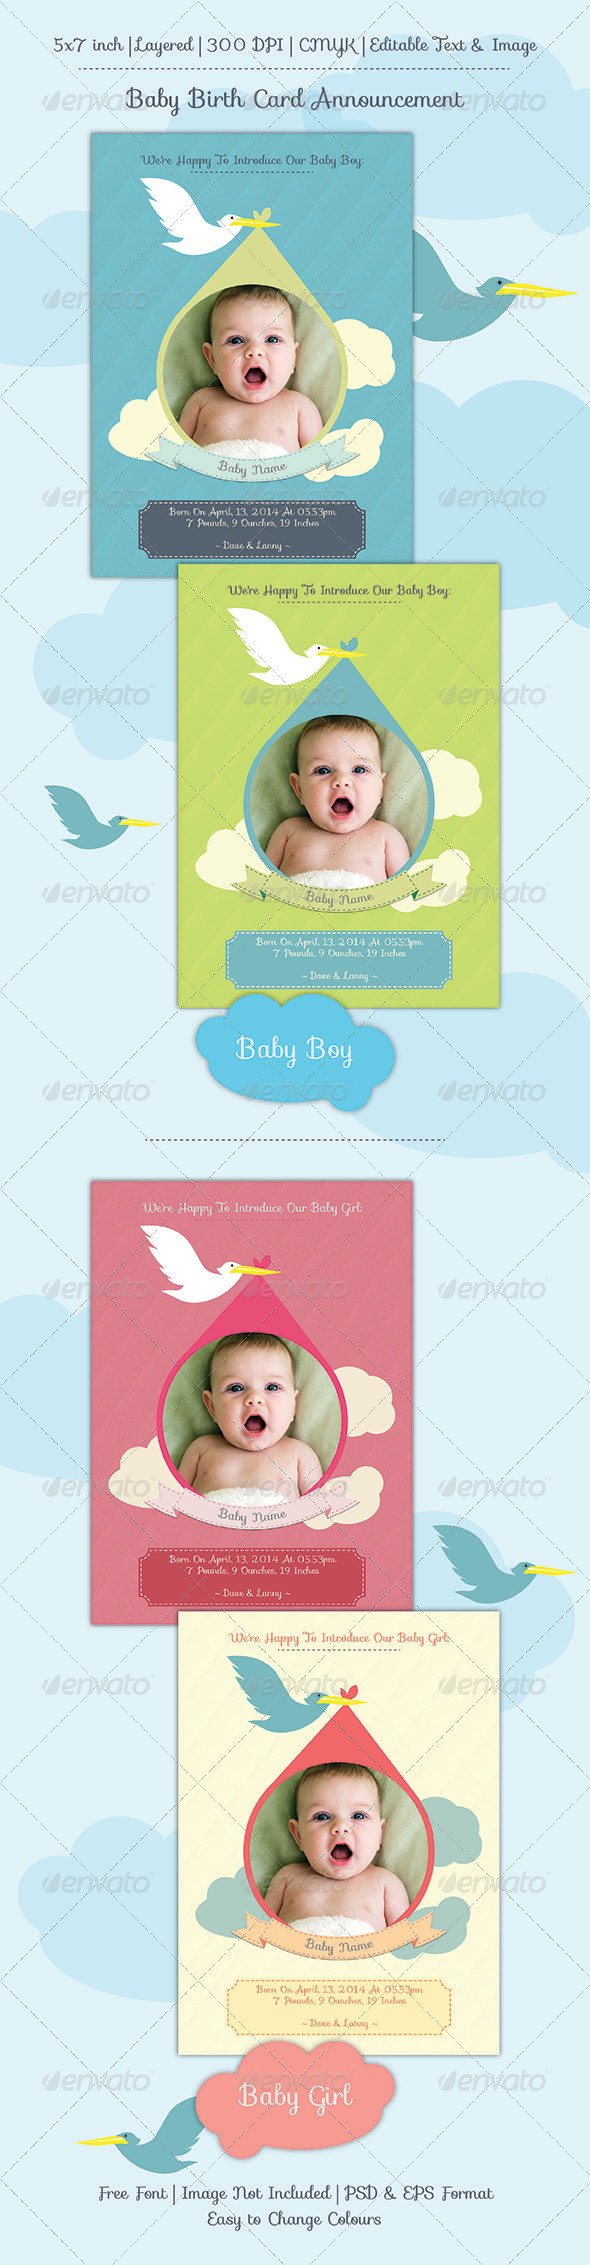 Baby Birth Announcement Card by apriliapratama – Baby Birth Invitation Card